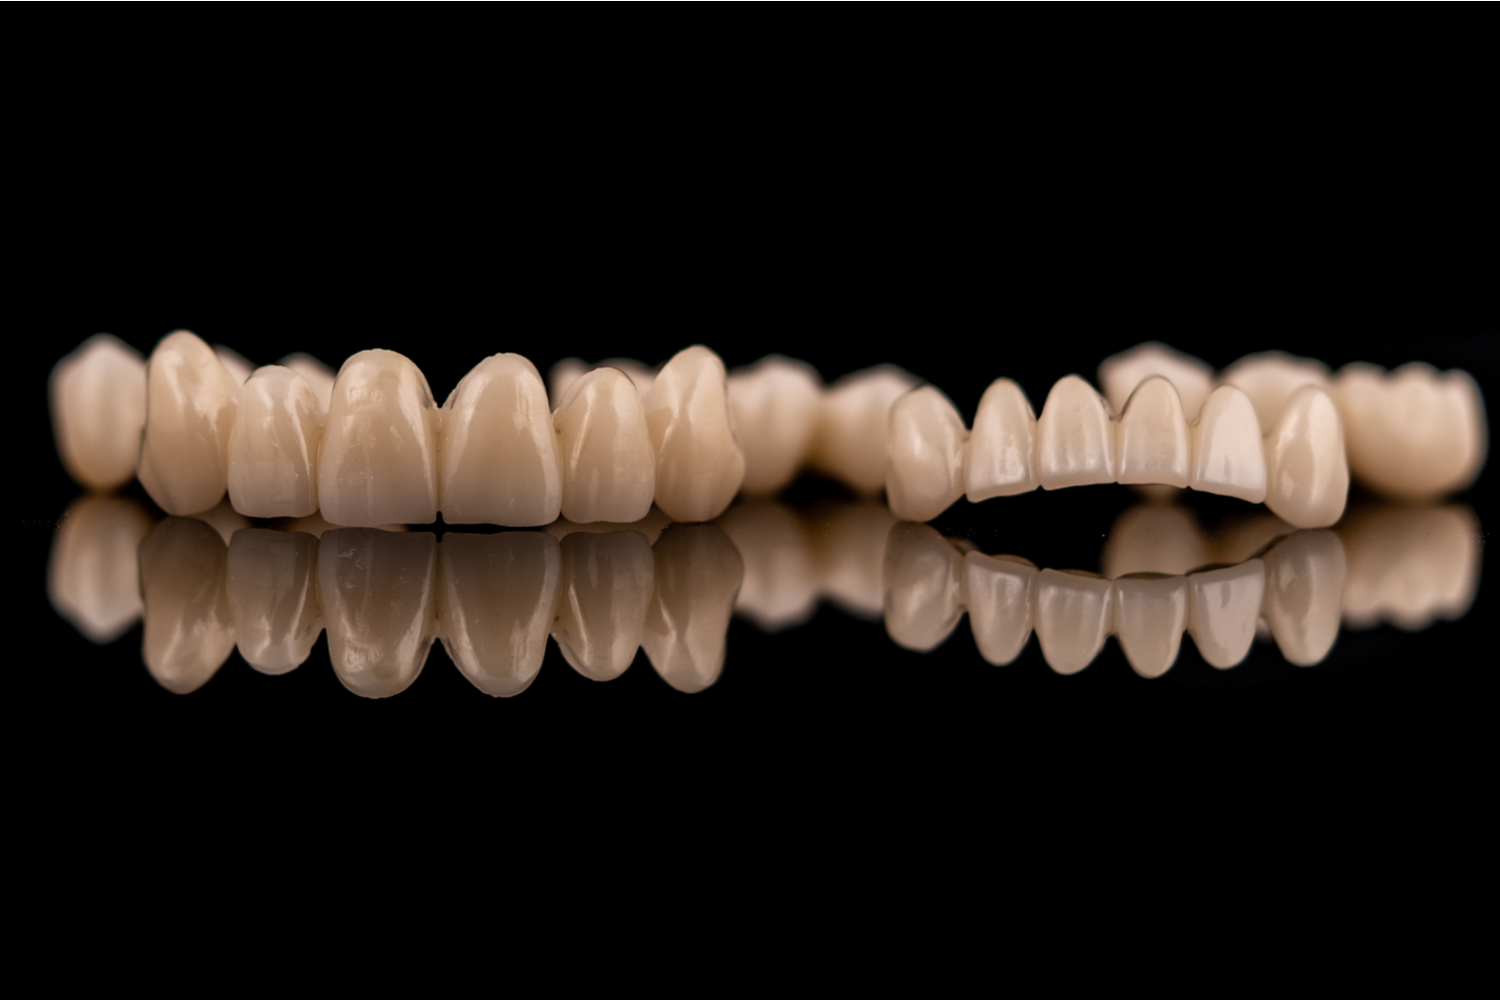 Candidates for Full Mouth Reconstruction